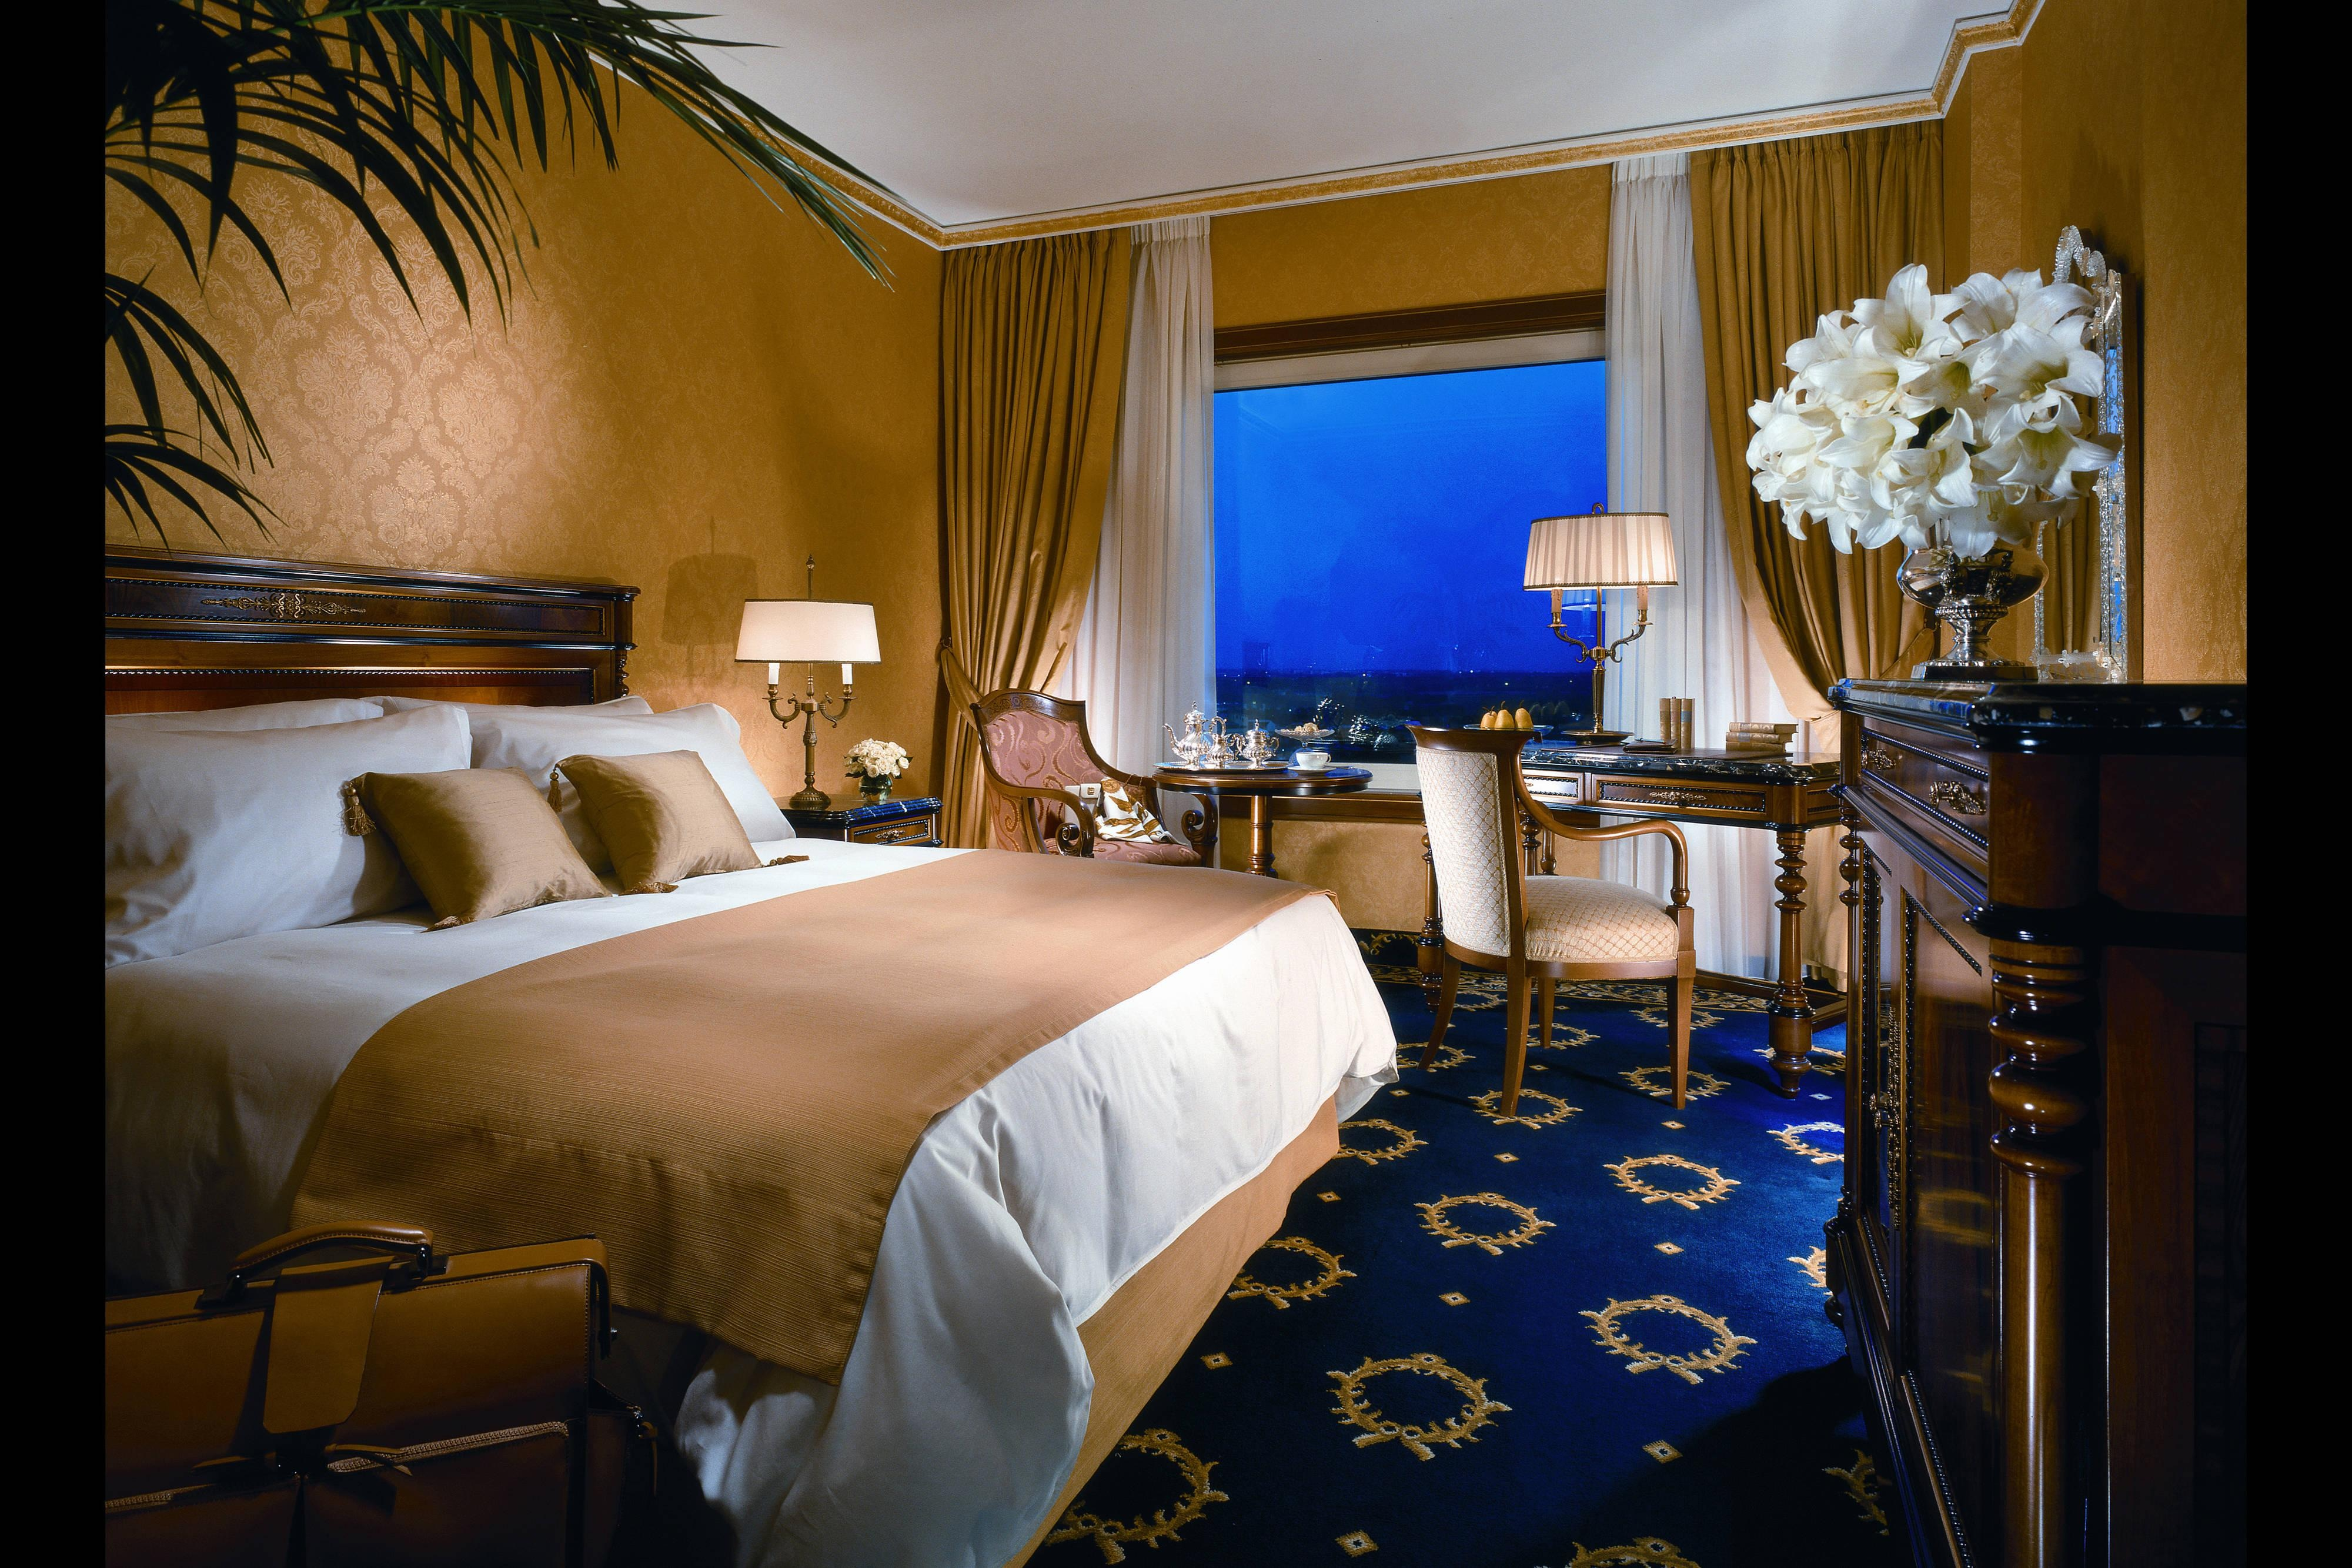 Rome Marriott Hotel Deluxe Rooms